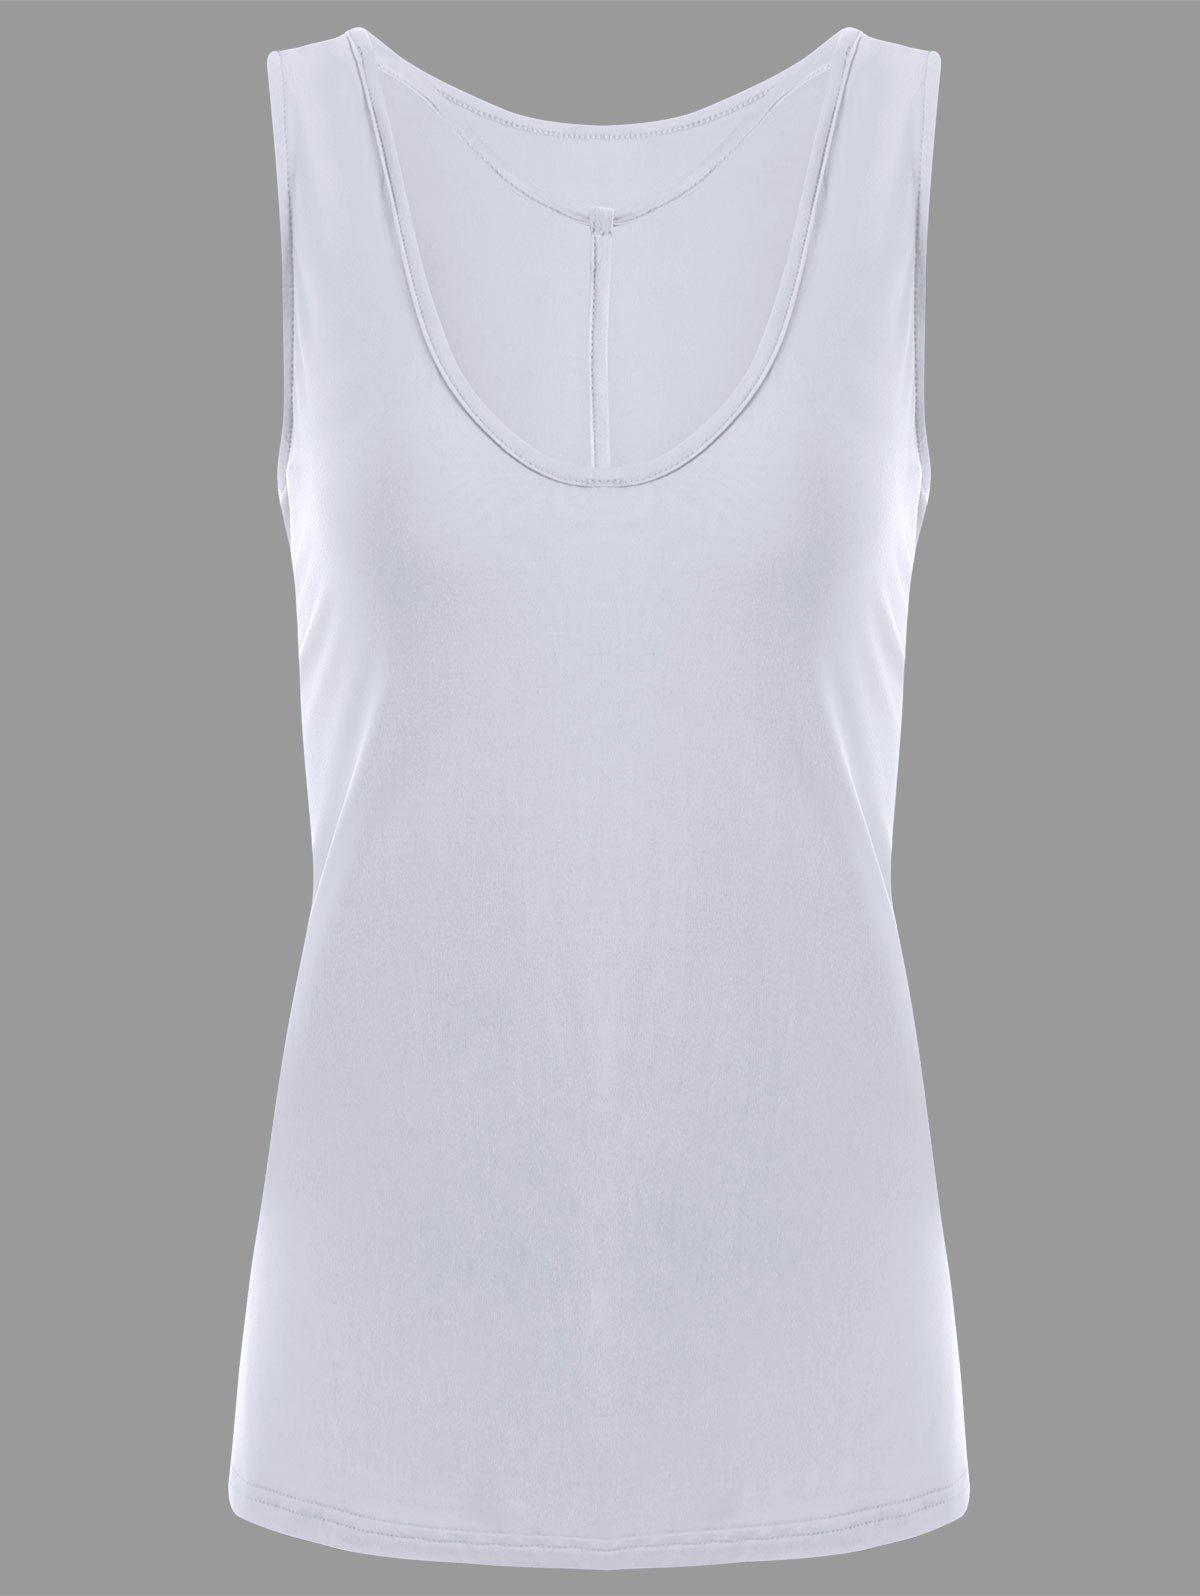 Y-strap Casual Tank Top - WHITE 2XL